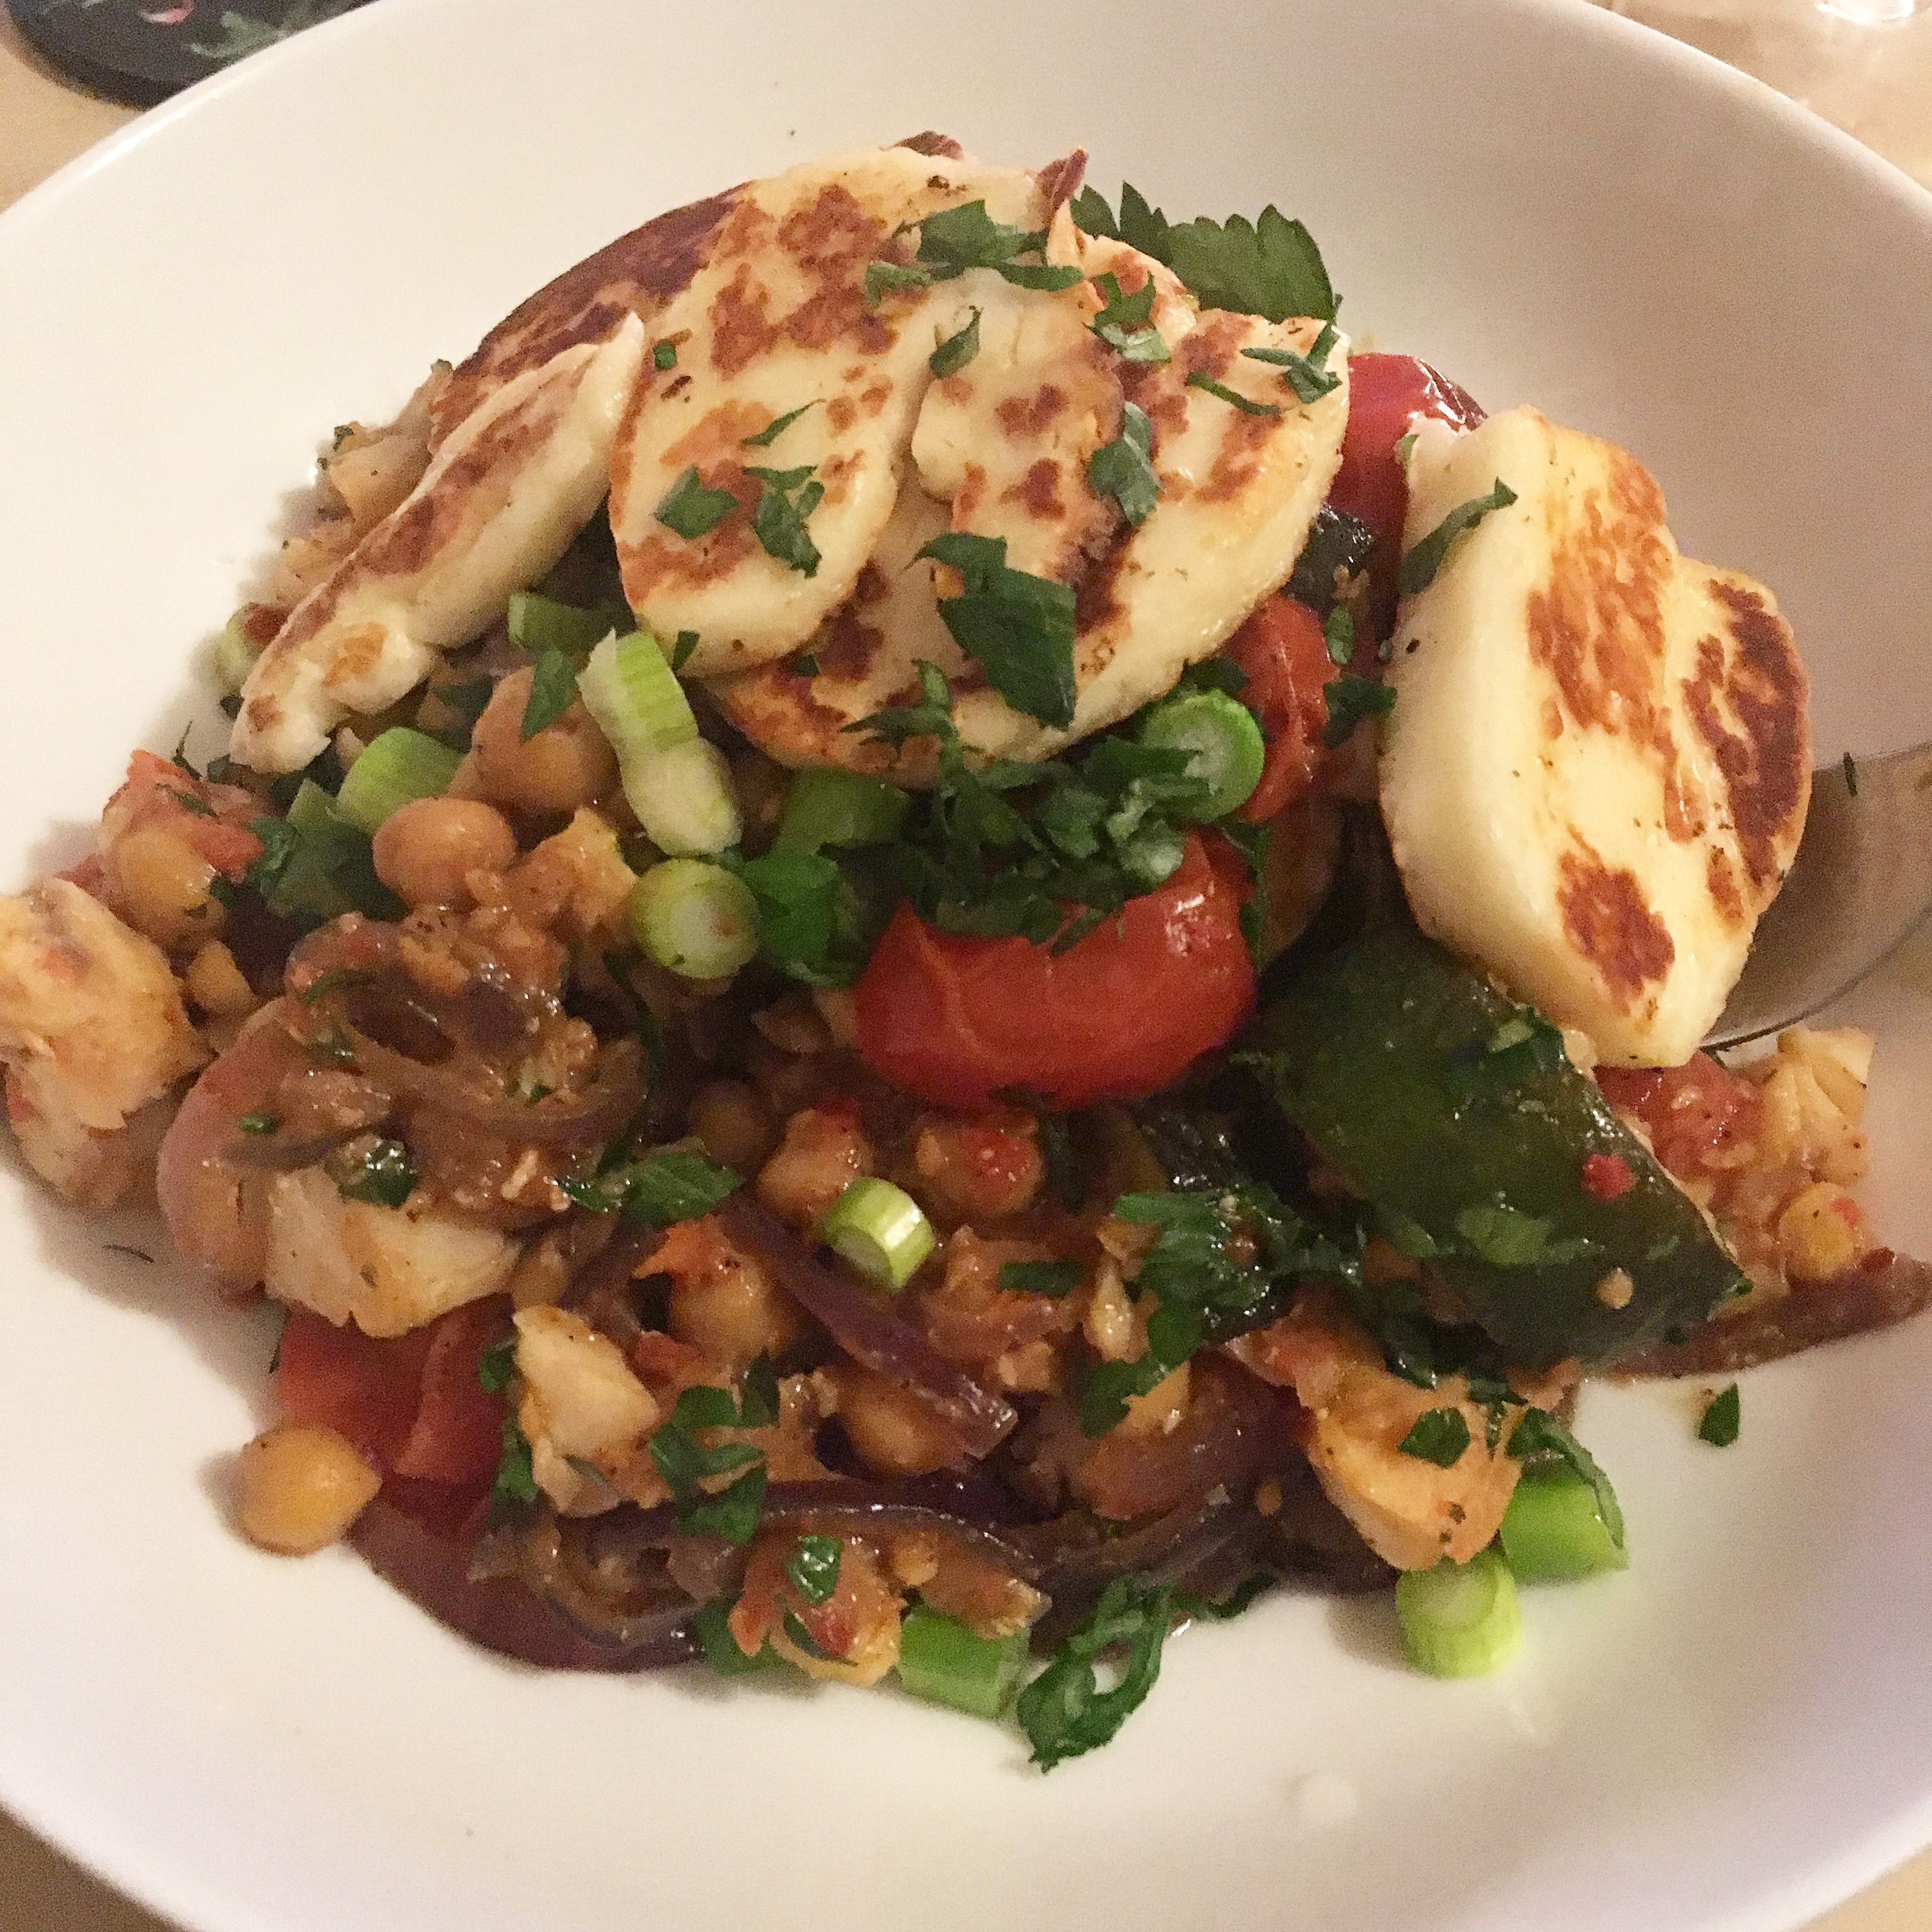 Halloumi with tomato and chickpea stew